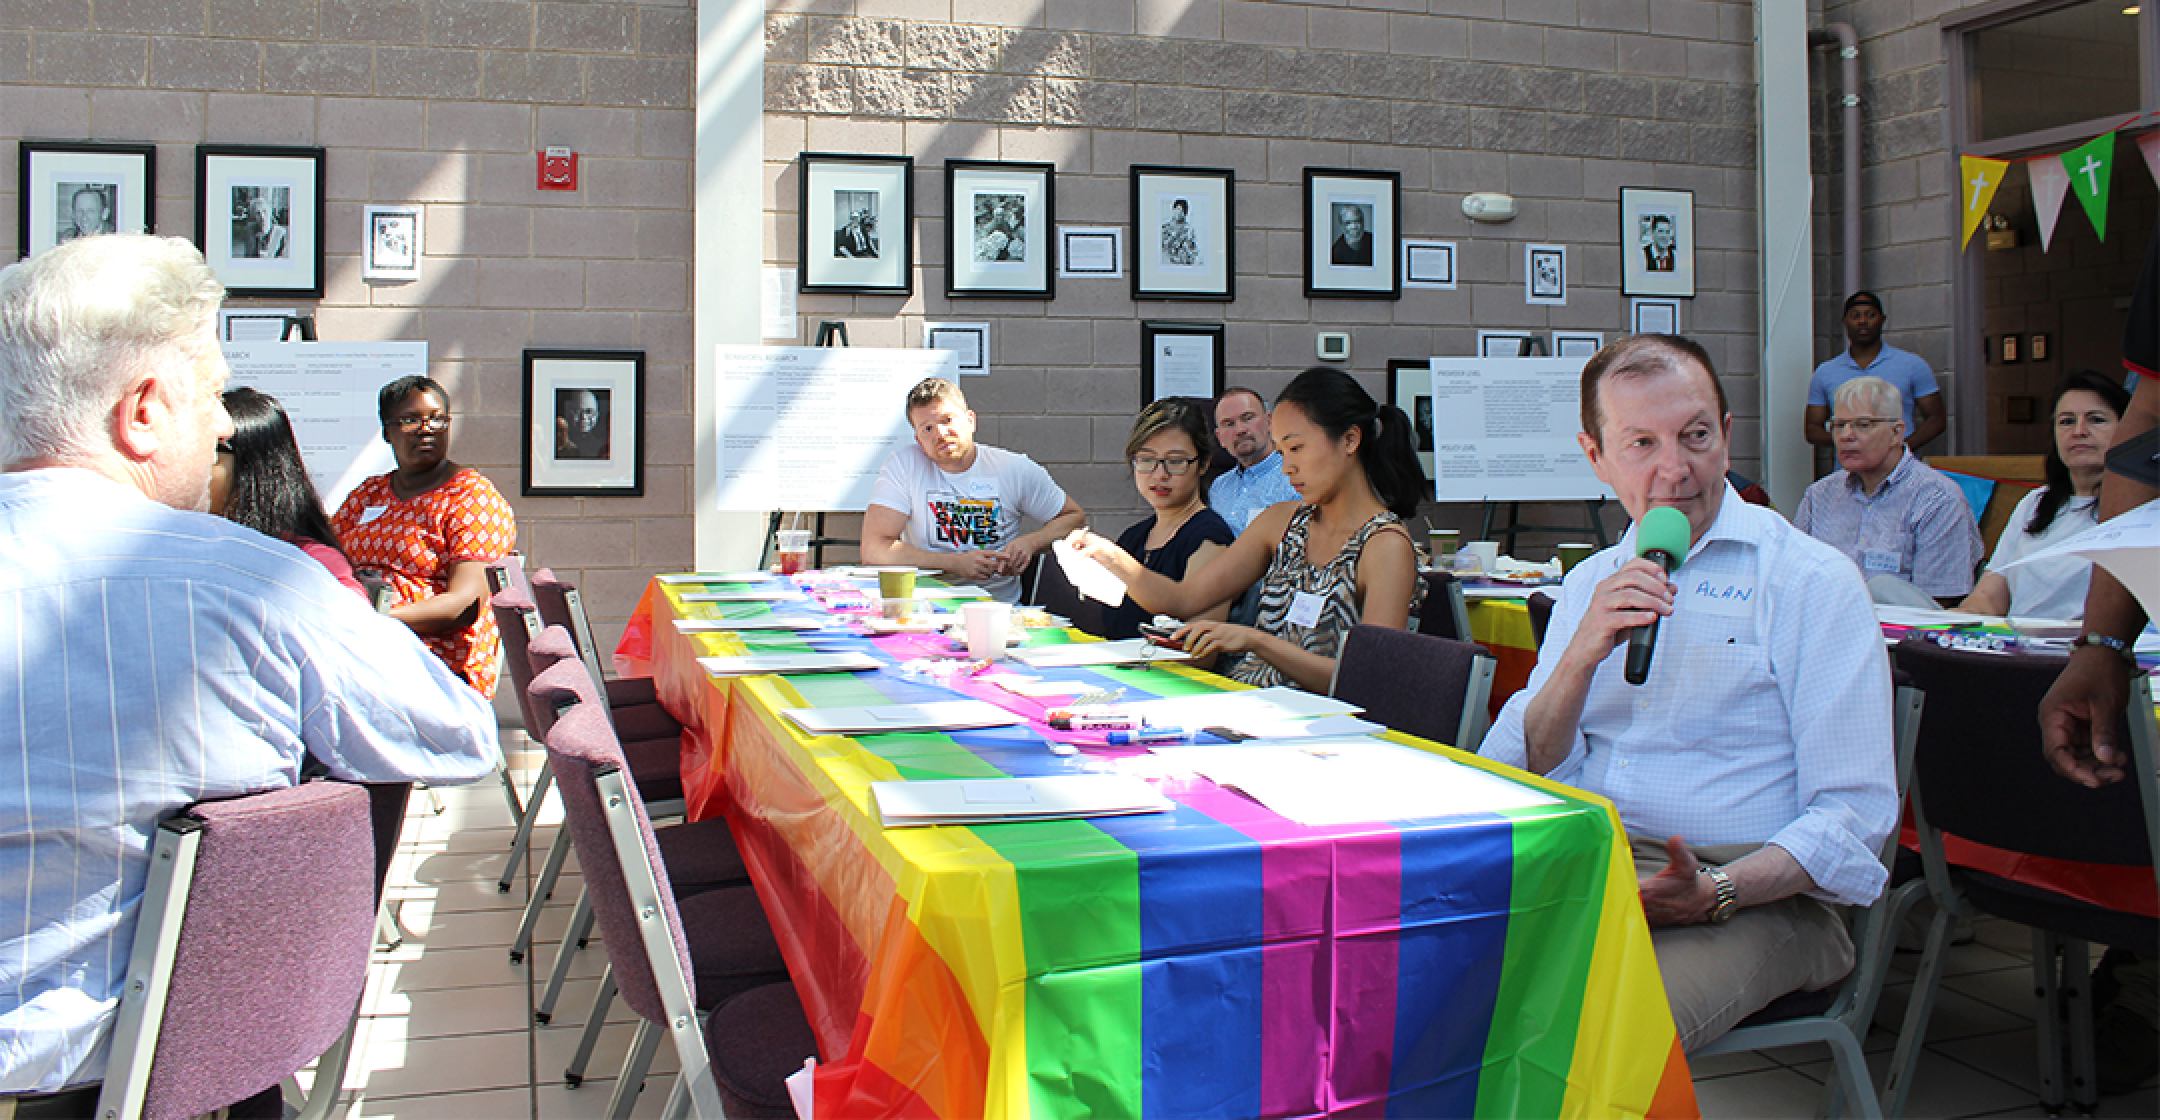 Participants in the LGBTQ+ Research Event